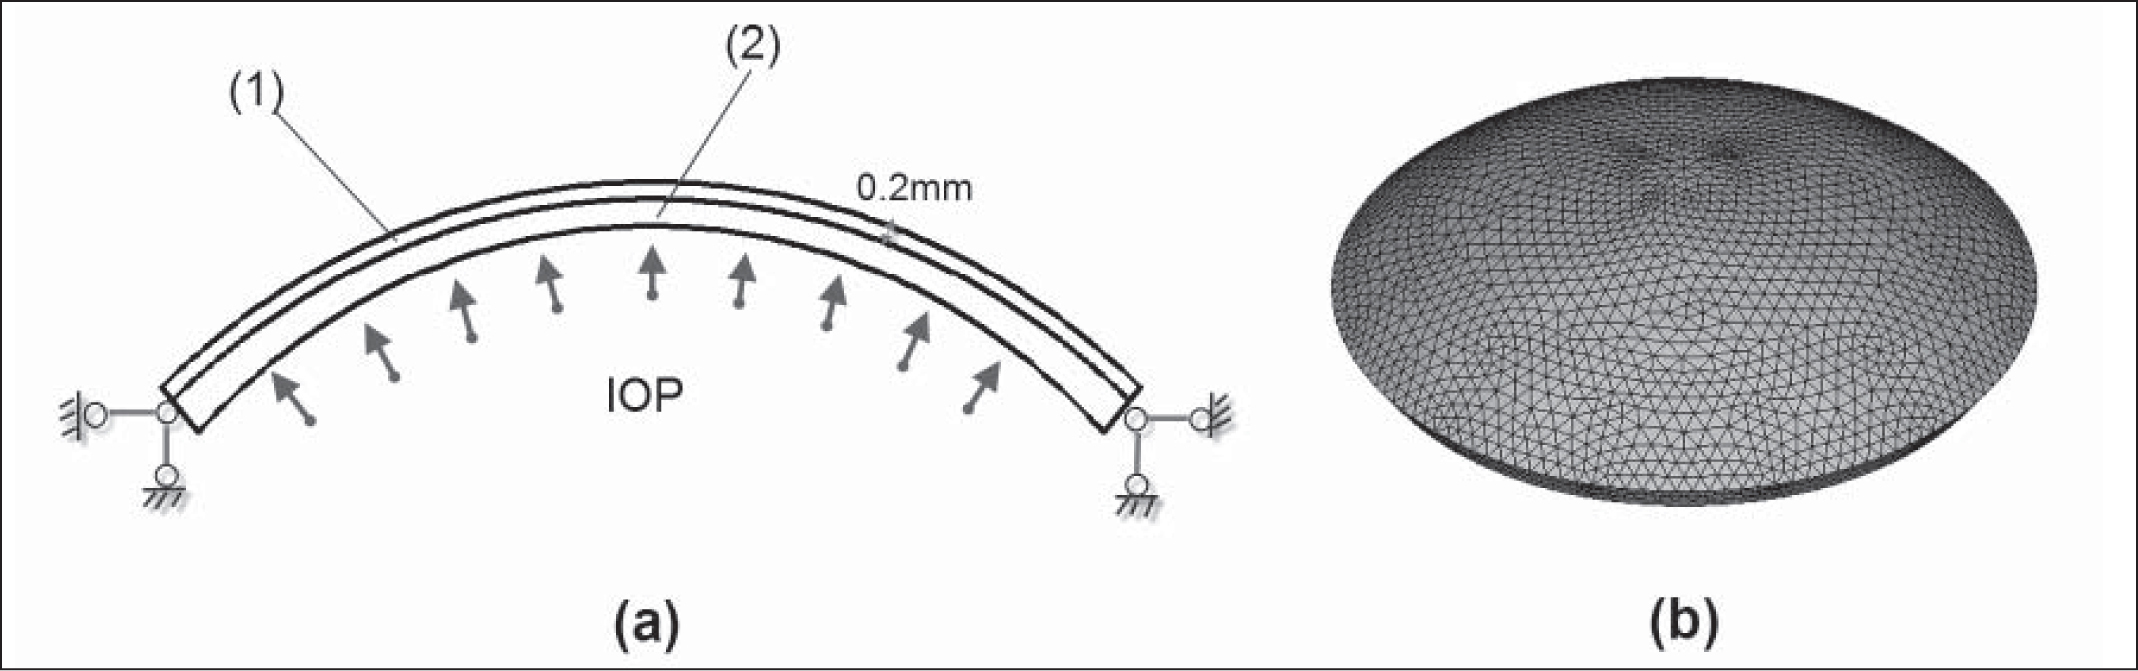 (A) Balanced model of the cornea under intraocular pressure. (B) Finite element meshed model for the normal cornea. The model was meshed by 4 node tetrahedron element and contained 23,534 elements.